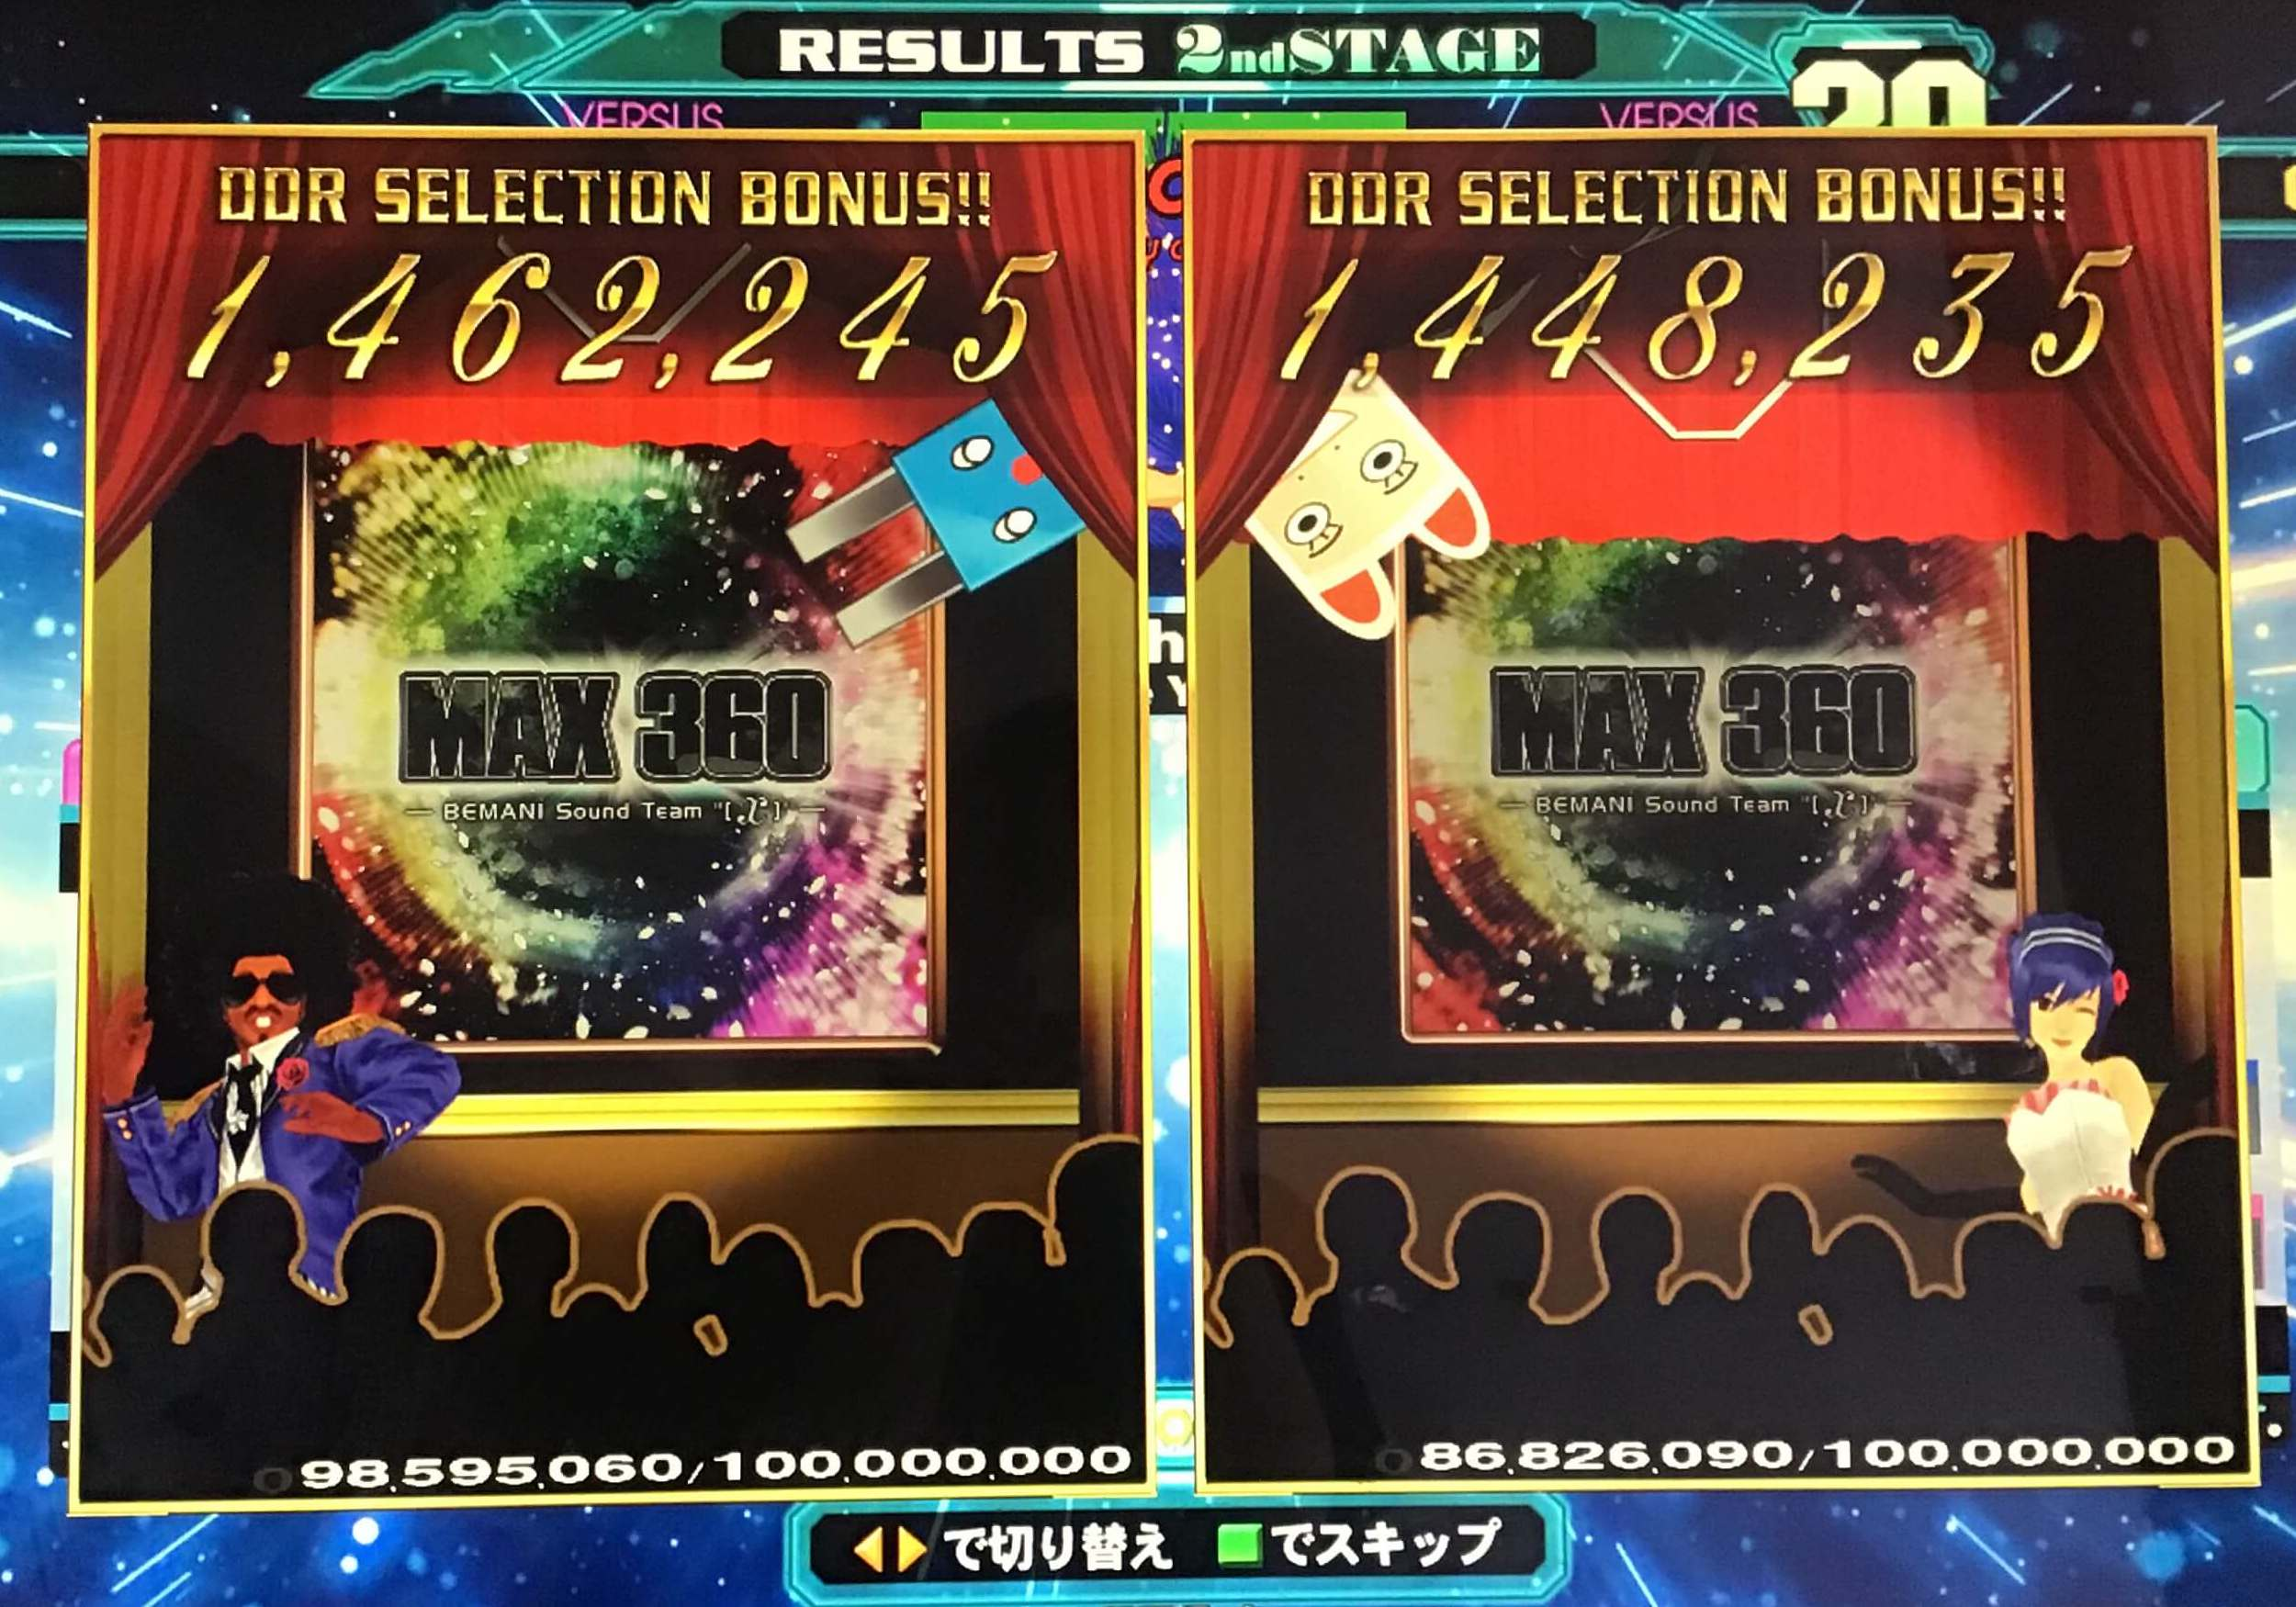 DDR SELECTIONのボーナス